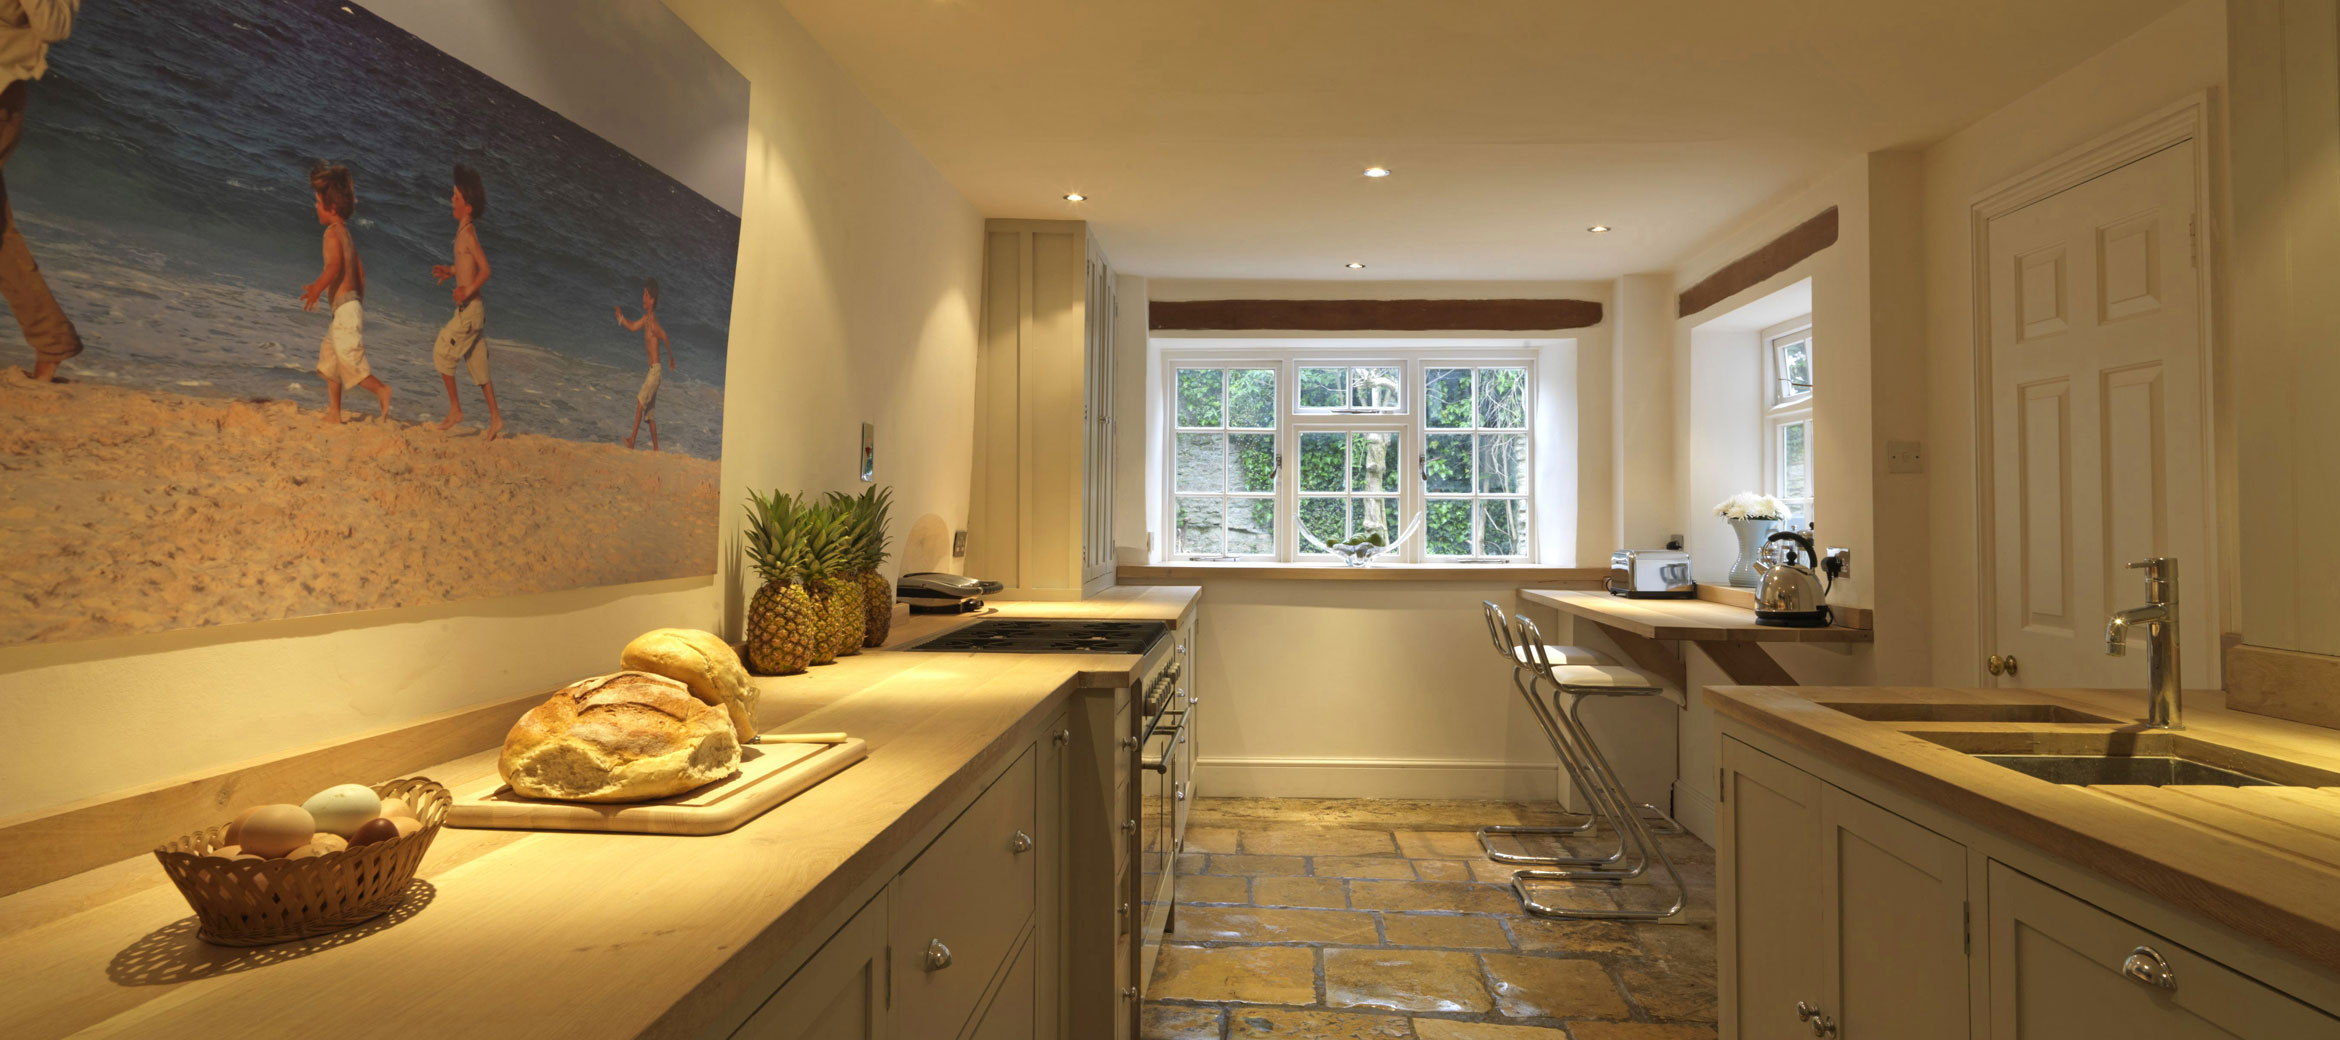 old-surgery-cotswold-kitchen